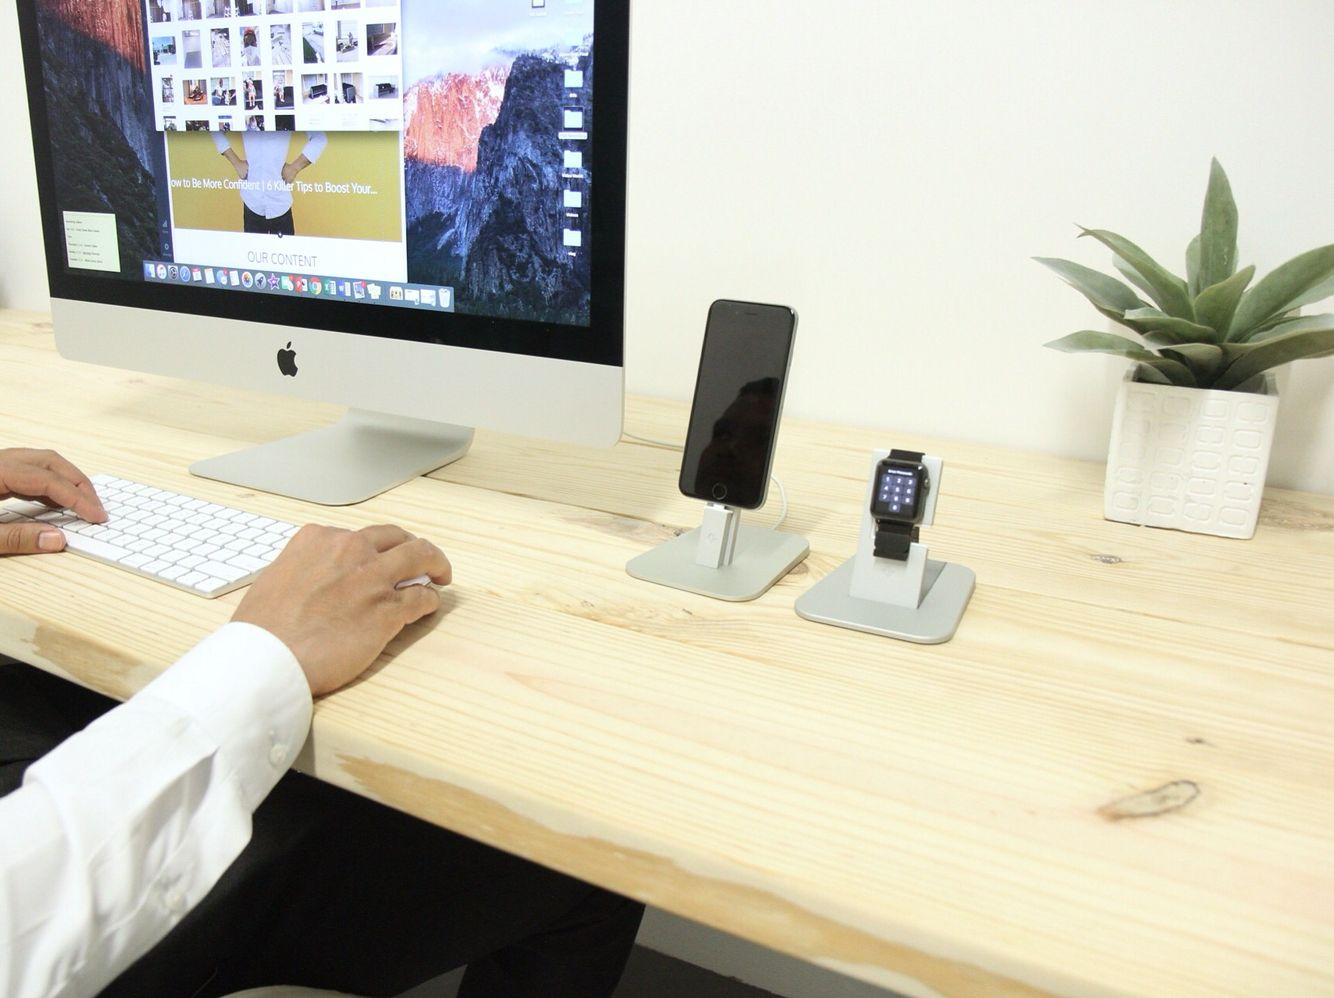 Check out our review of this office setup in our new